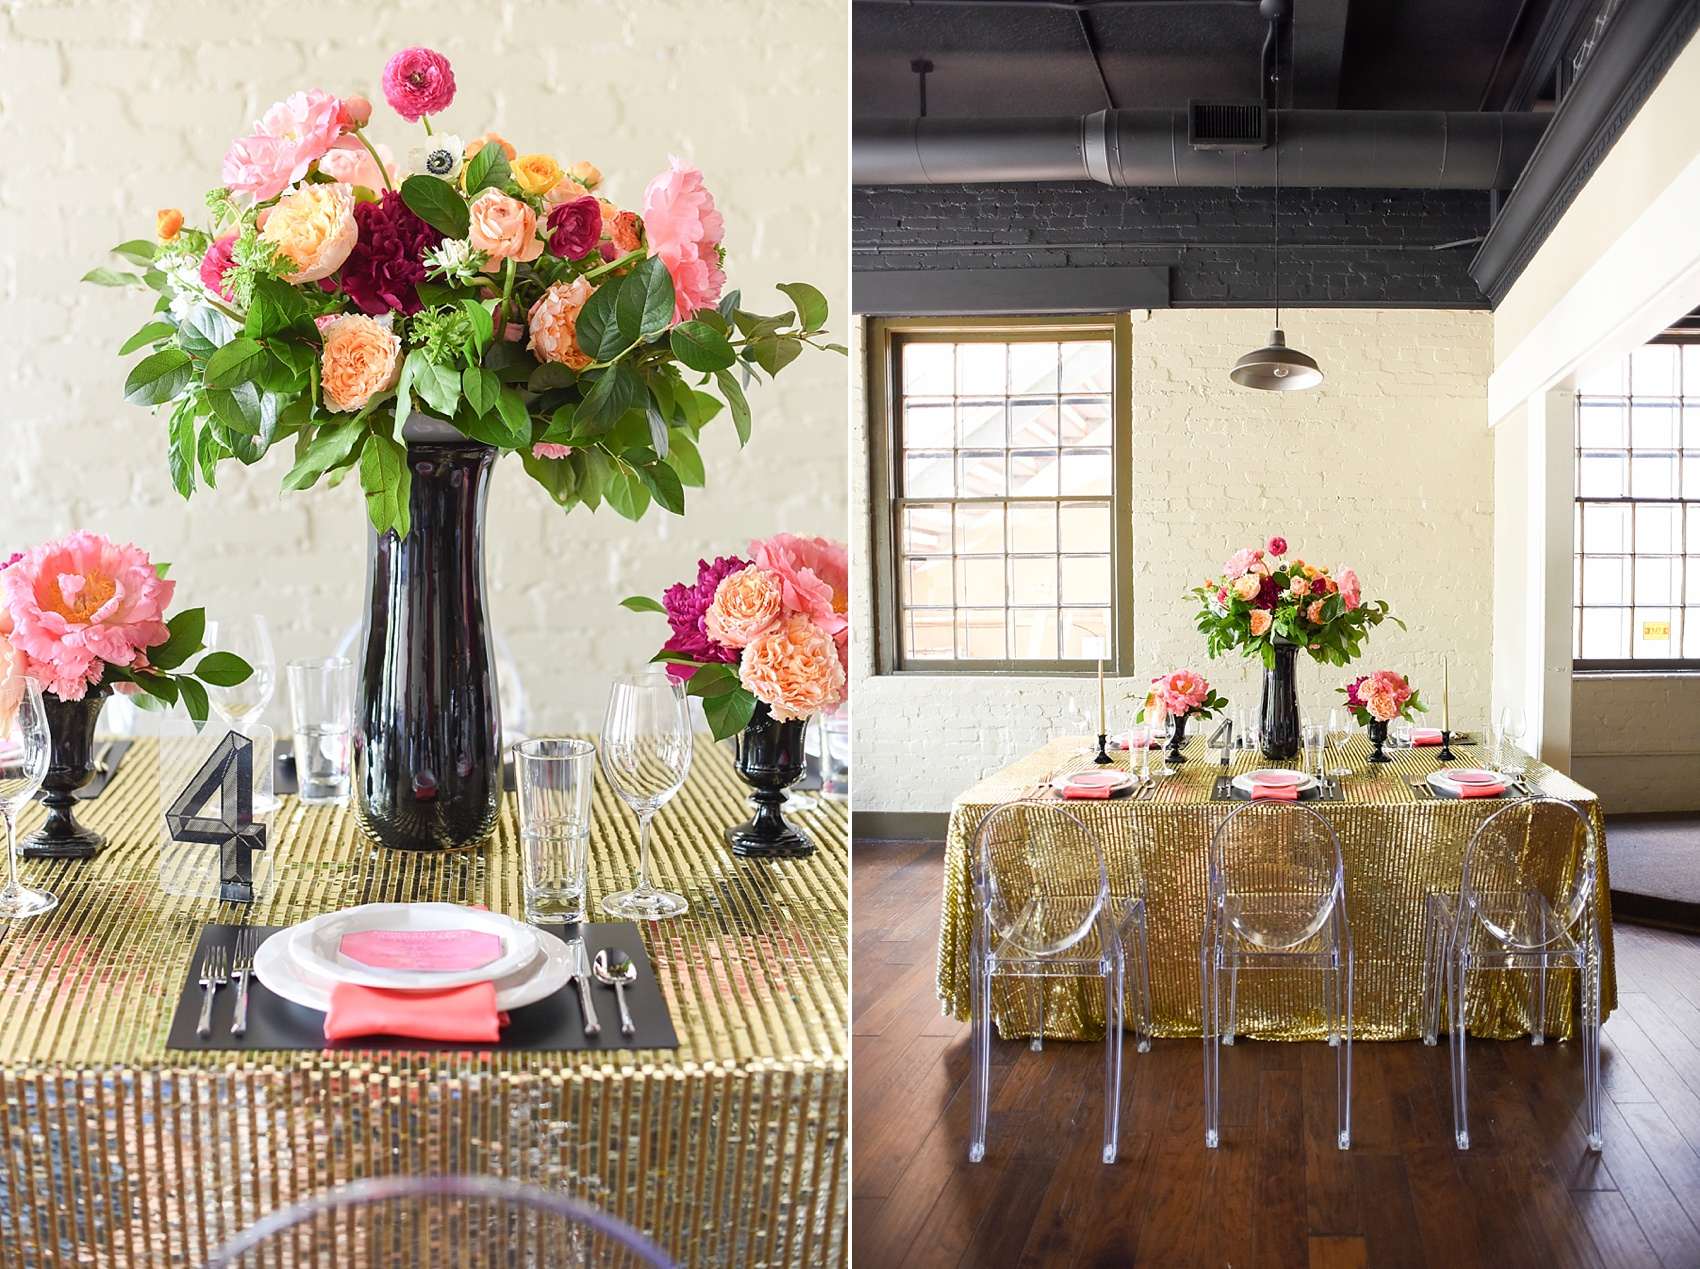 Modern pink and orange wedding ideas with gold sequin linen and ghost chair setup. Photos by Mikkel Paige photography, planning by Ashton Events and Every Last Detail.